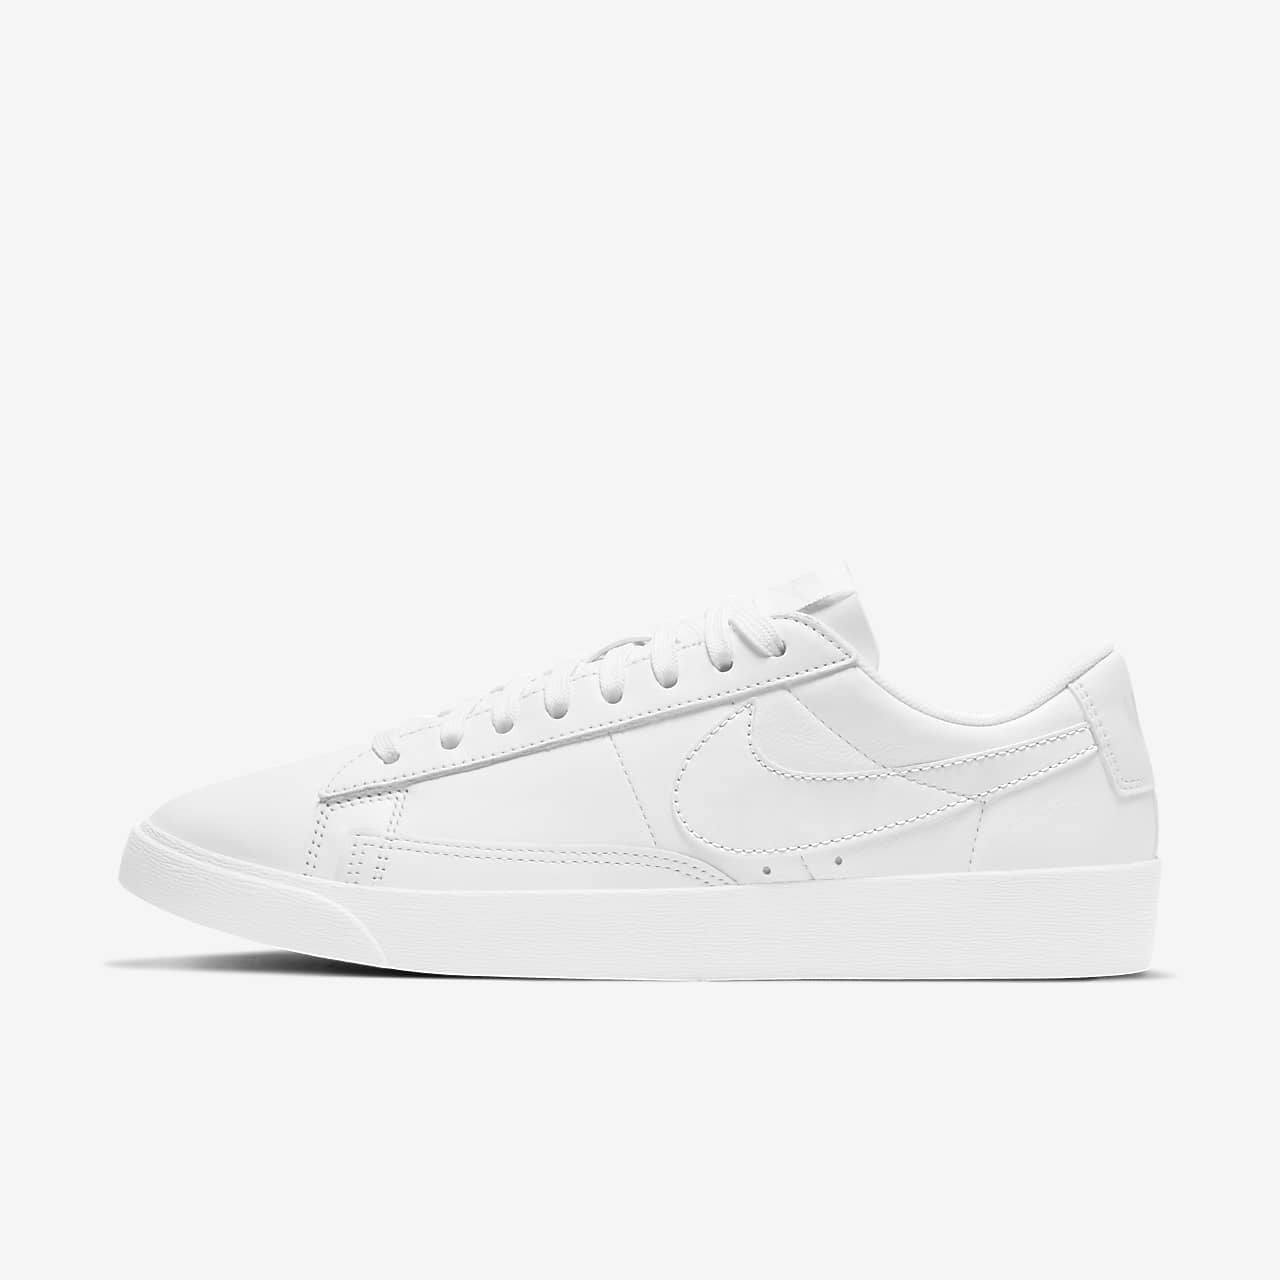 uk availability 3f383 3ae8e Nike Blazer Low LE Women's Shoe